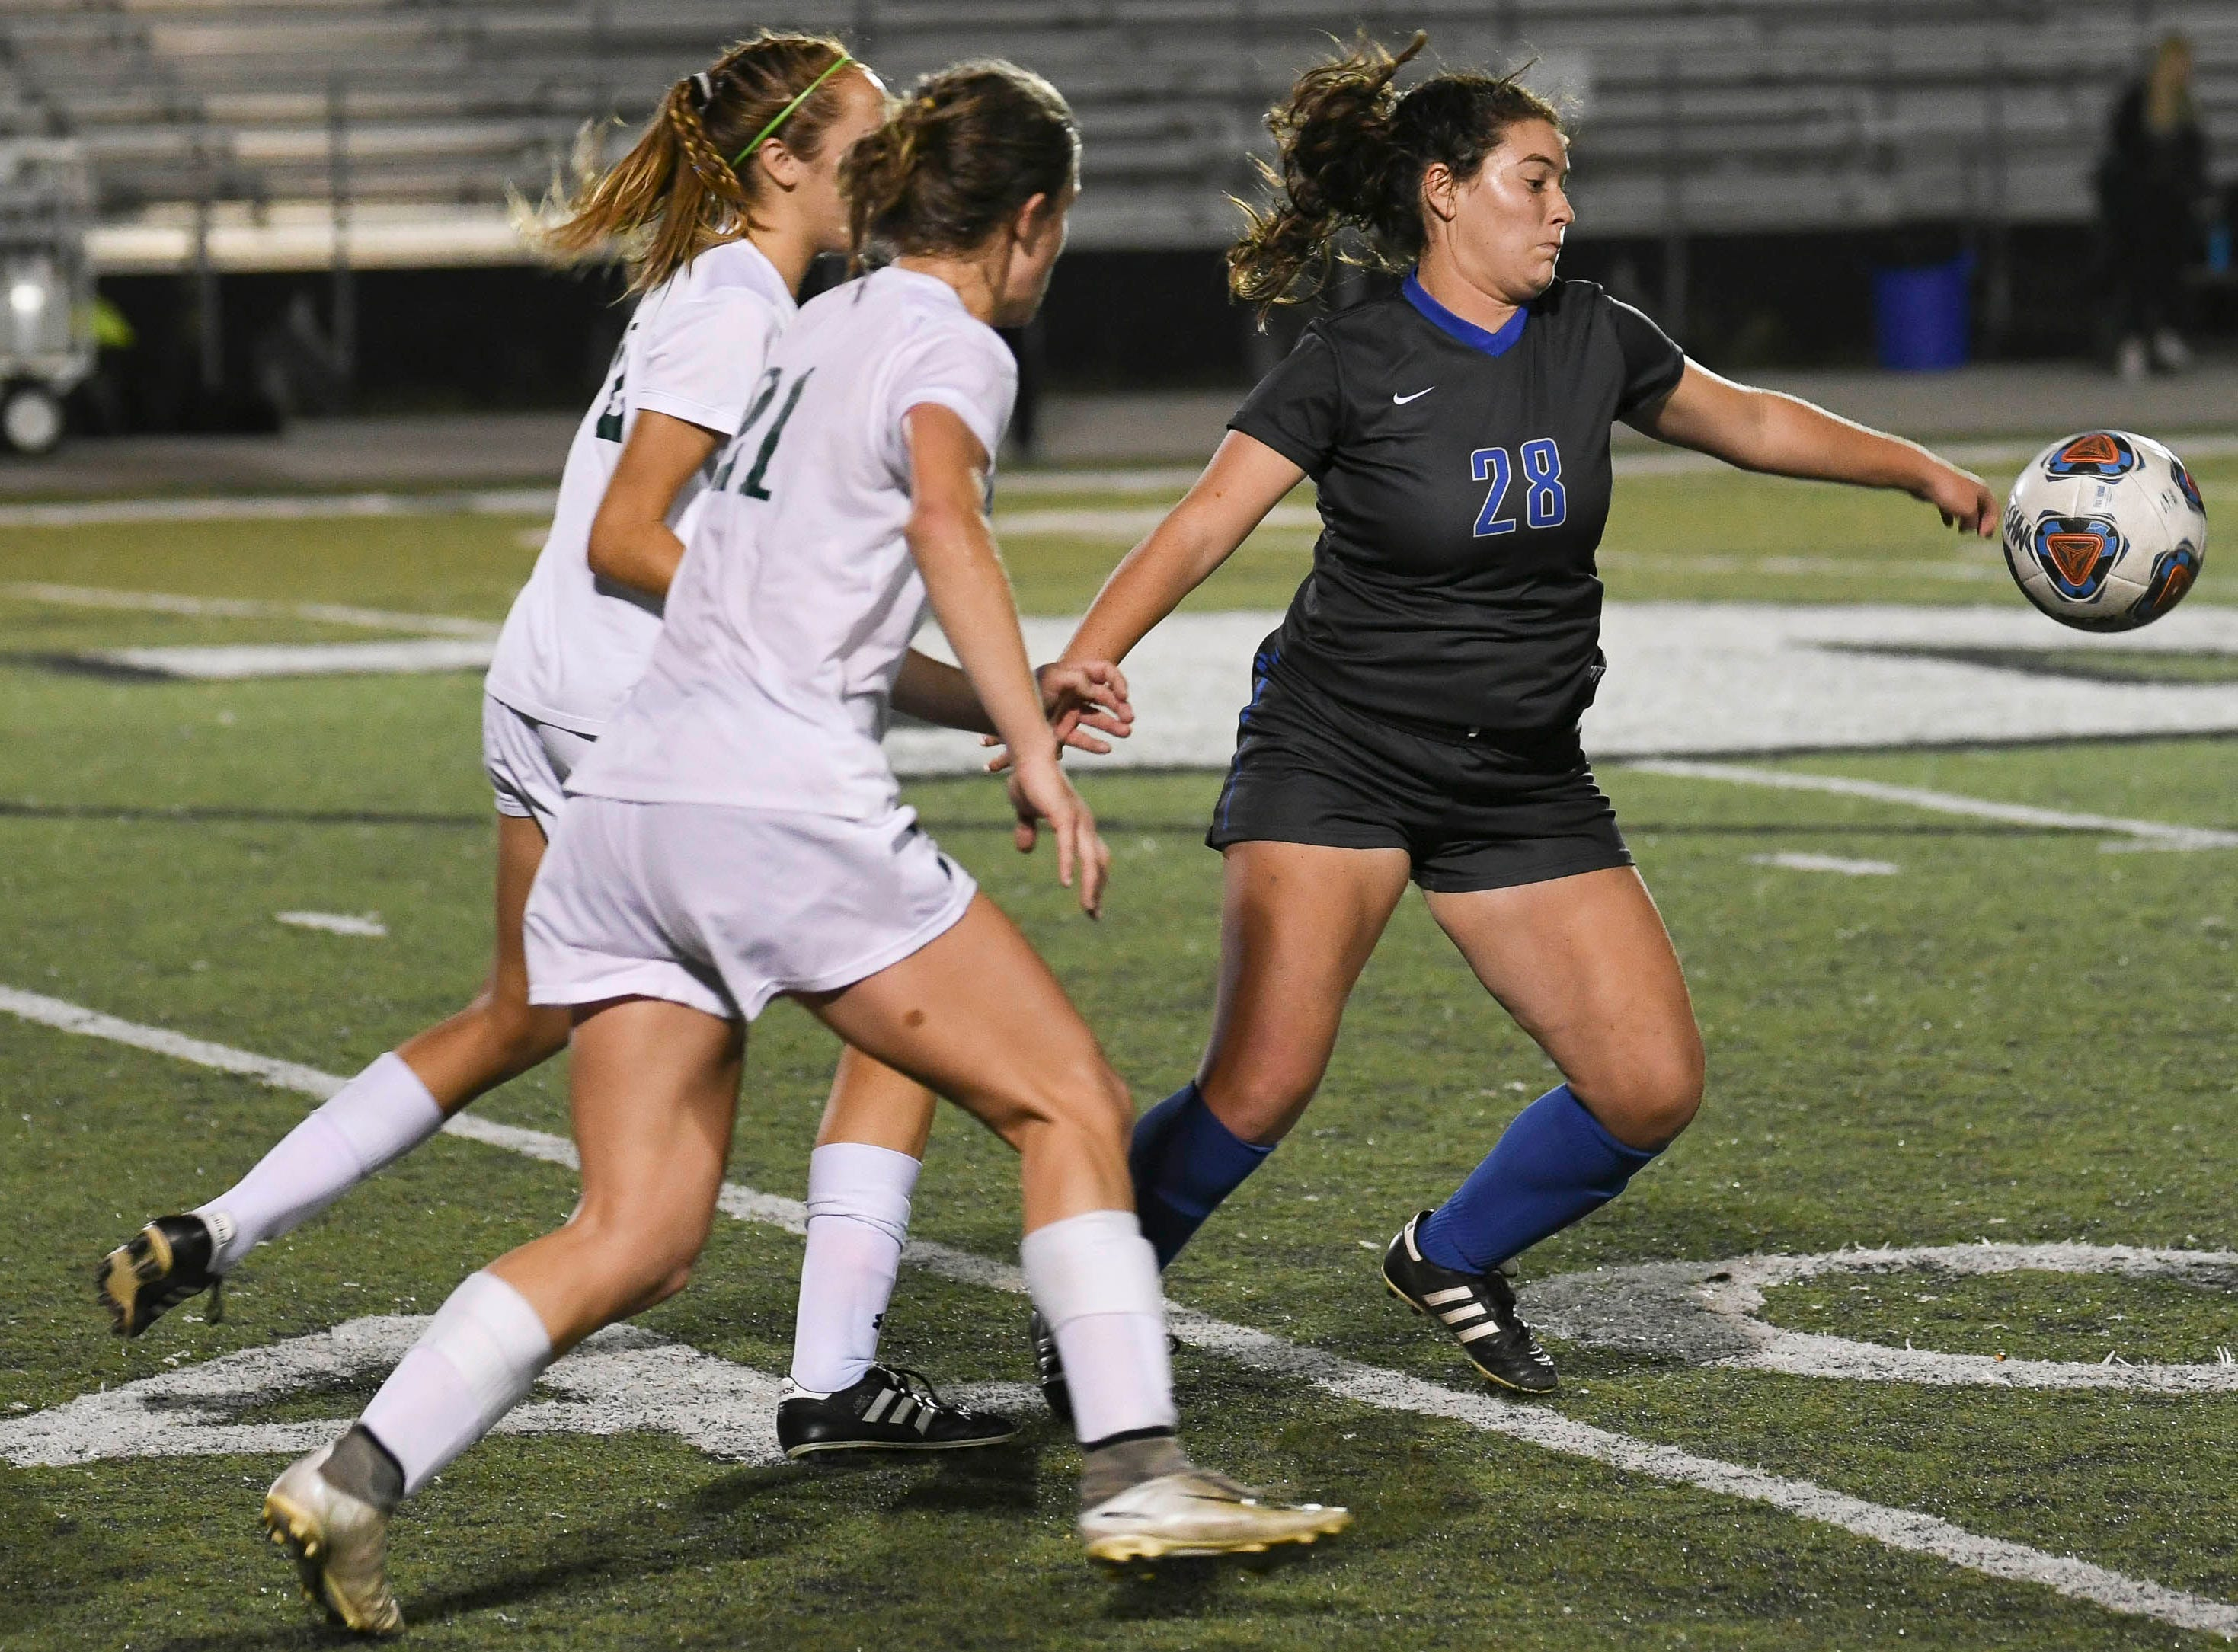 Samantha Rheingold of Cypress Bay controls the ball in front of a pair of Melbourne defenders during Thursday's game in Melbourne.